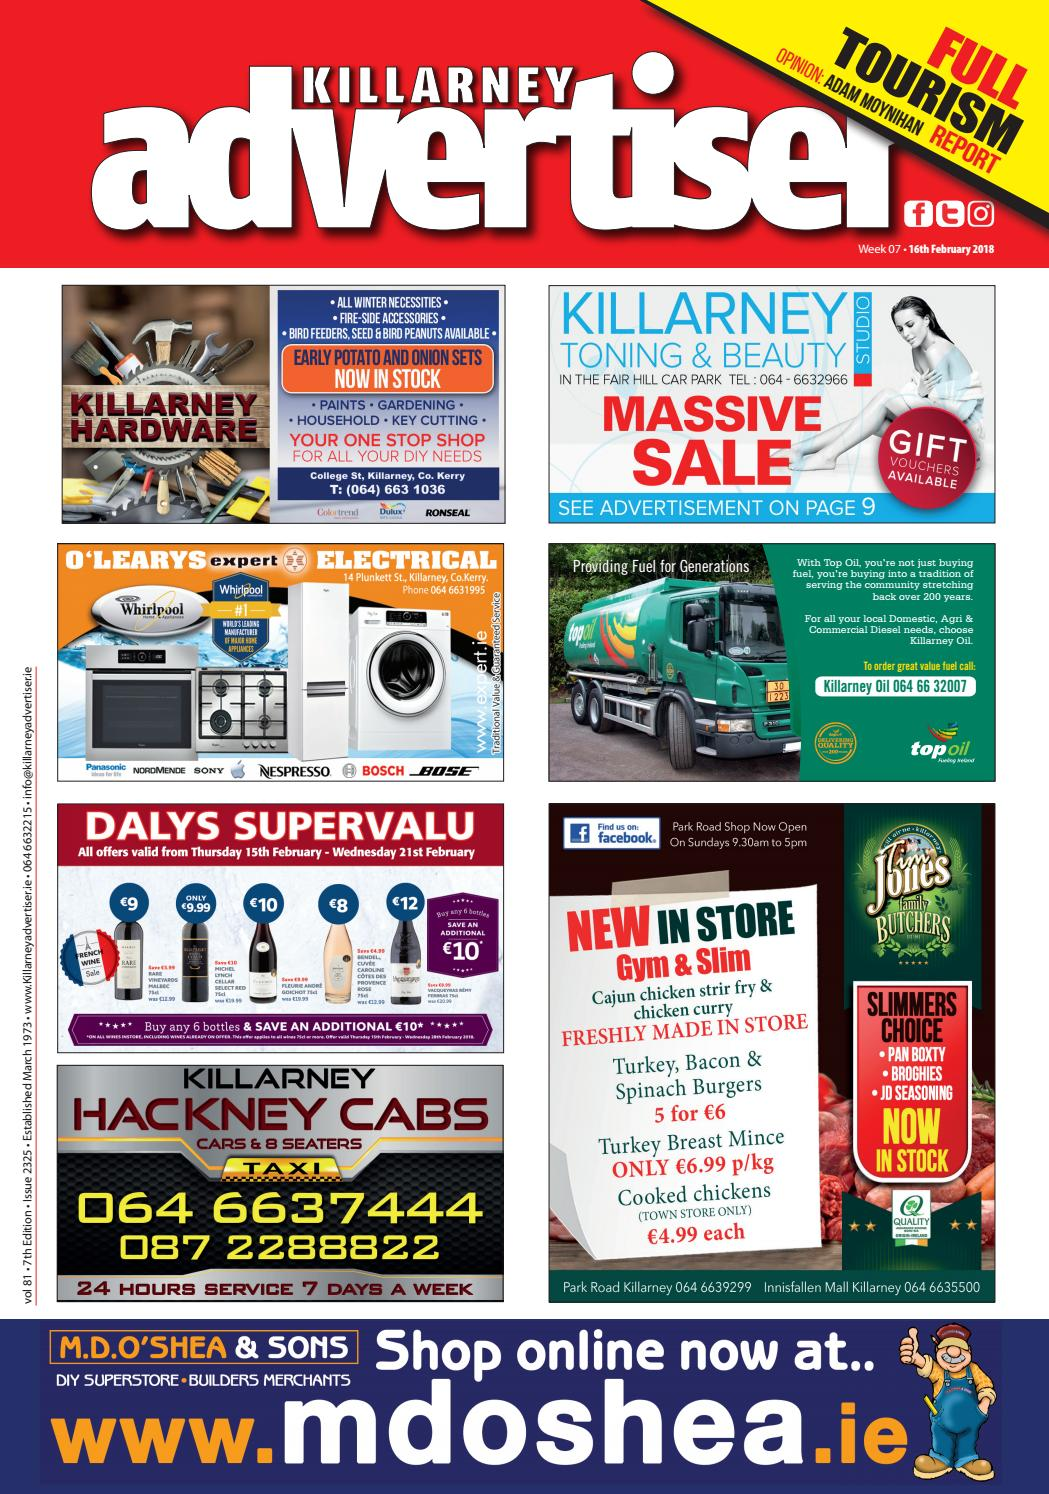 Find Local Killarney Latino Dating the Casual Way at OBC